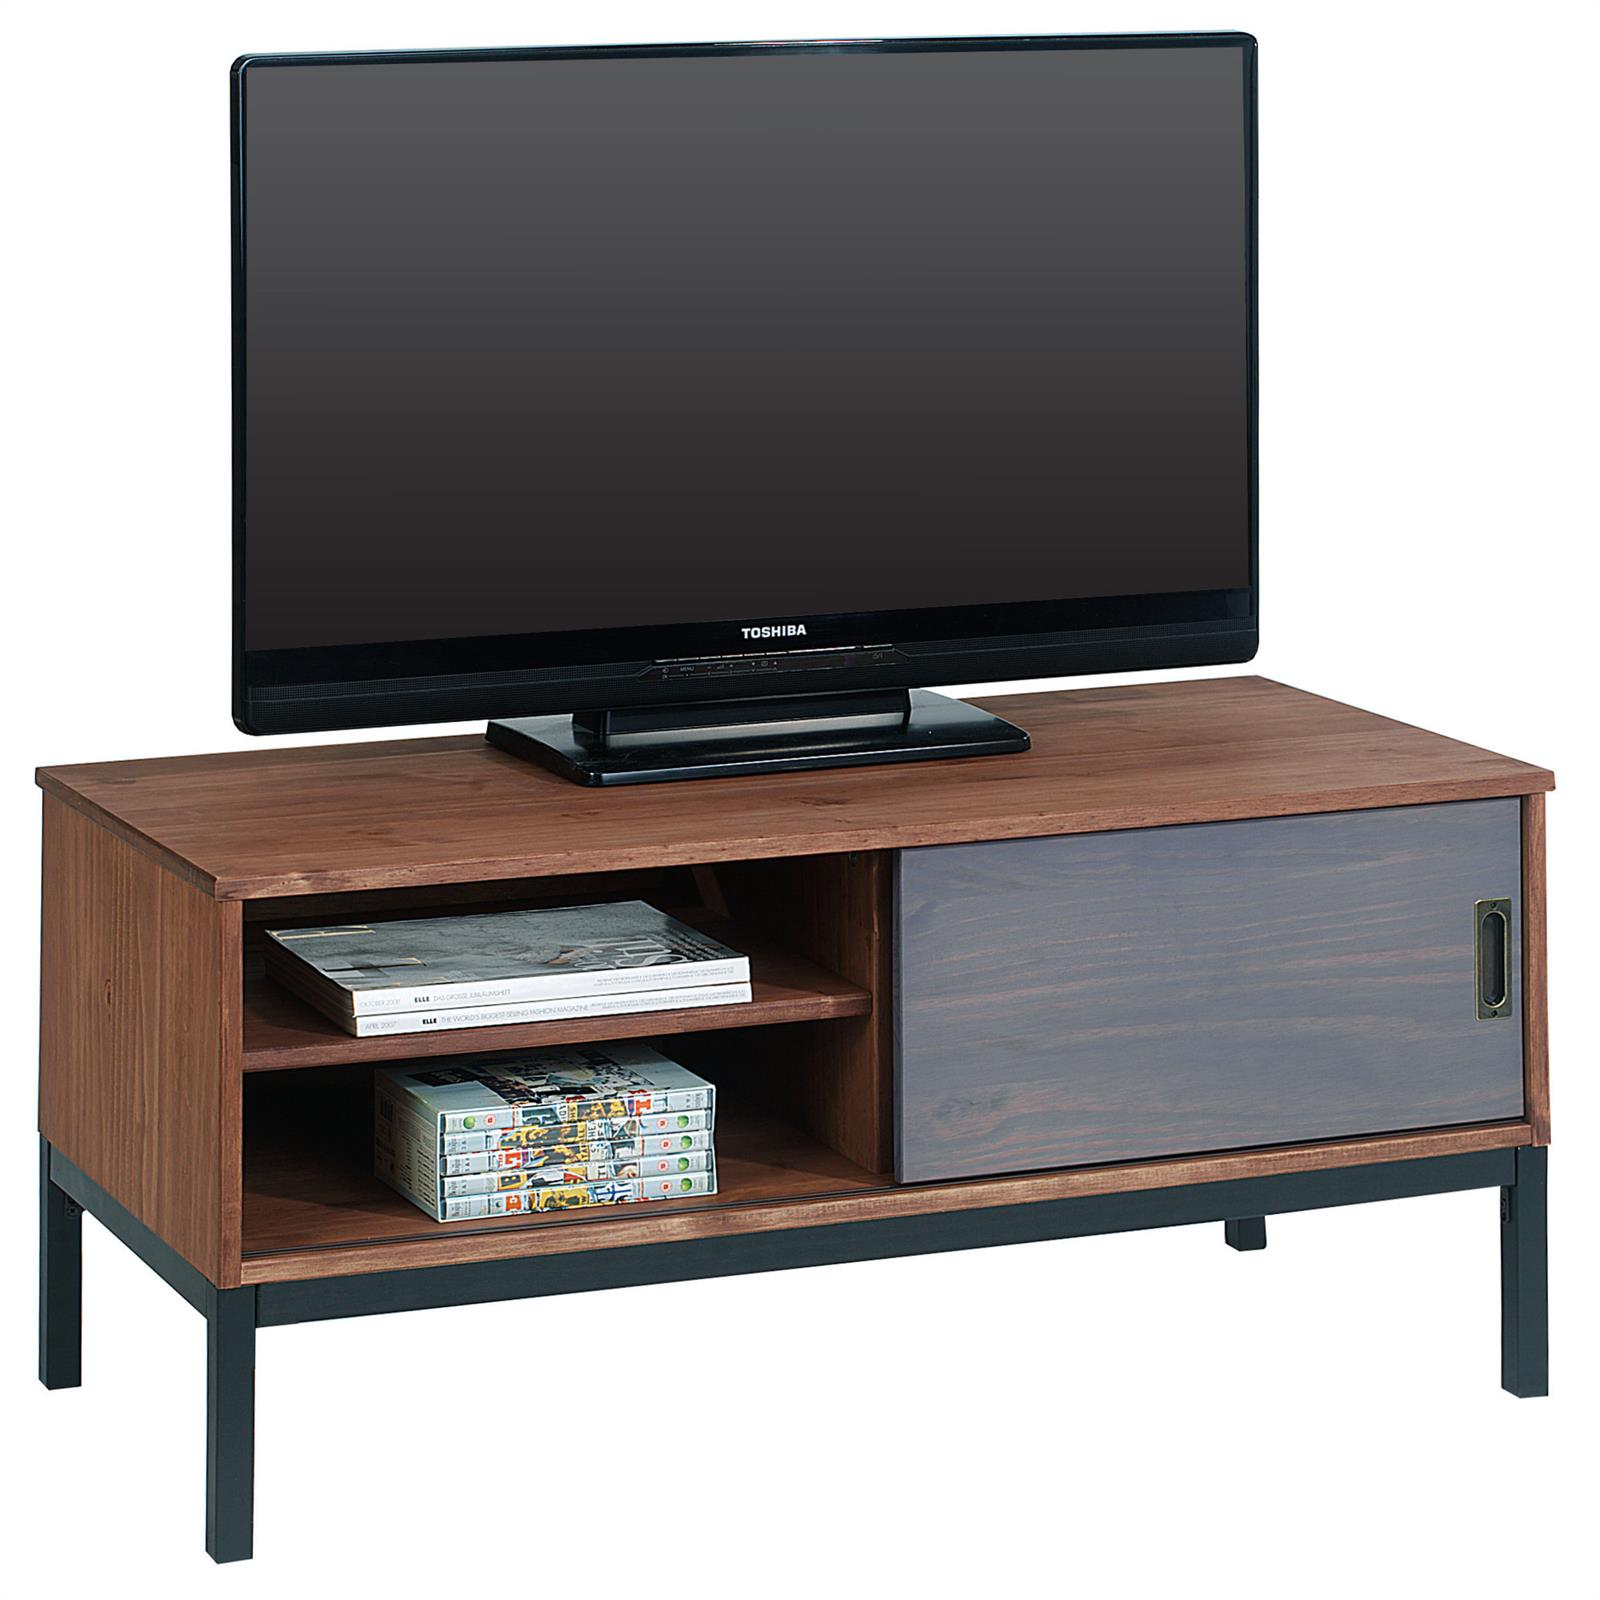 tv lowboard selma mit 1 schiebet r braun gebeizt mobilia24. Black Bedroom Furniture Sets. Home Design Ideas